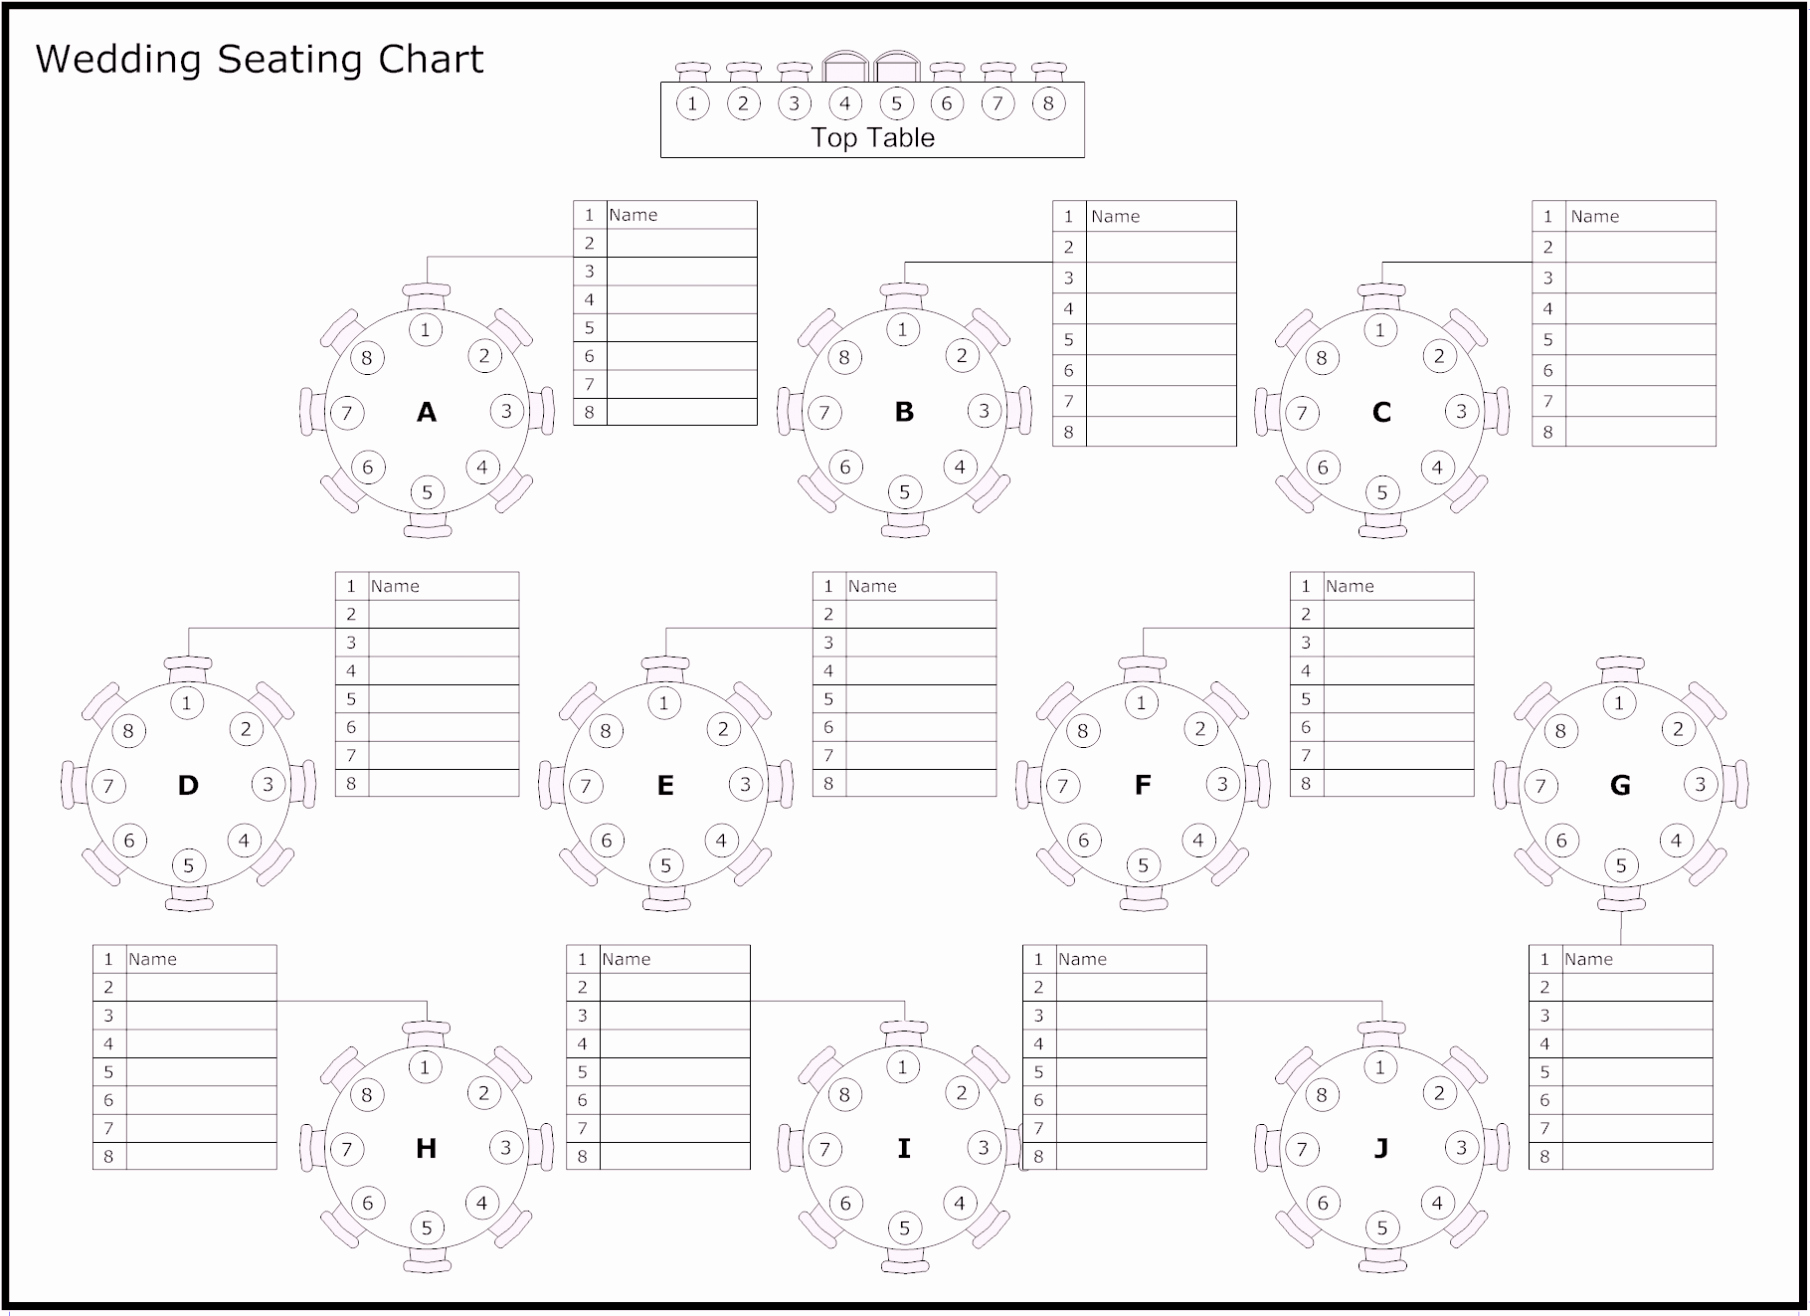 Wedding Seating Charts Templates Free New Free Table Of Reception & Wedding Seating Chart Template